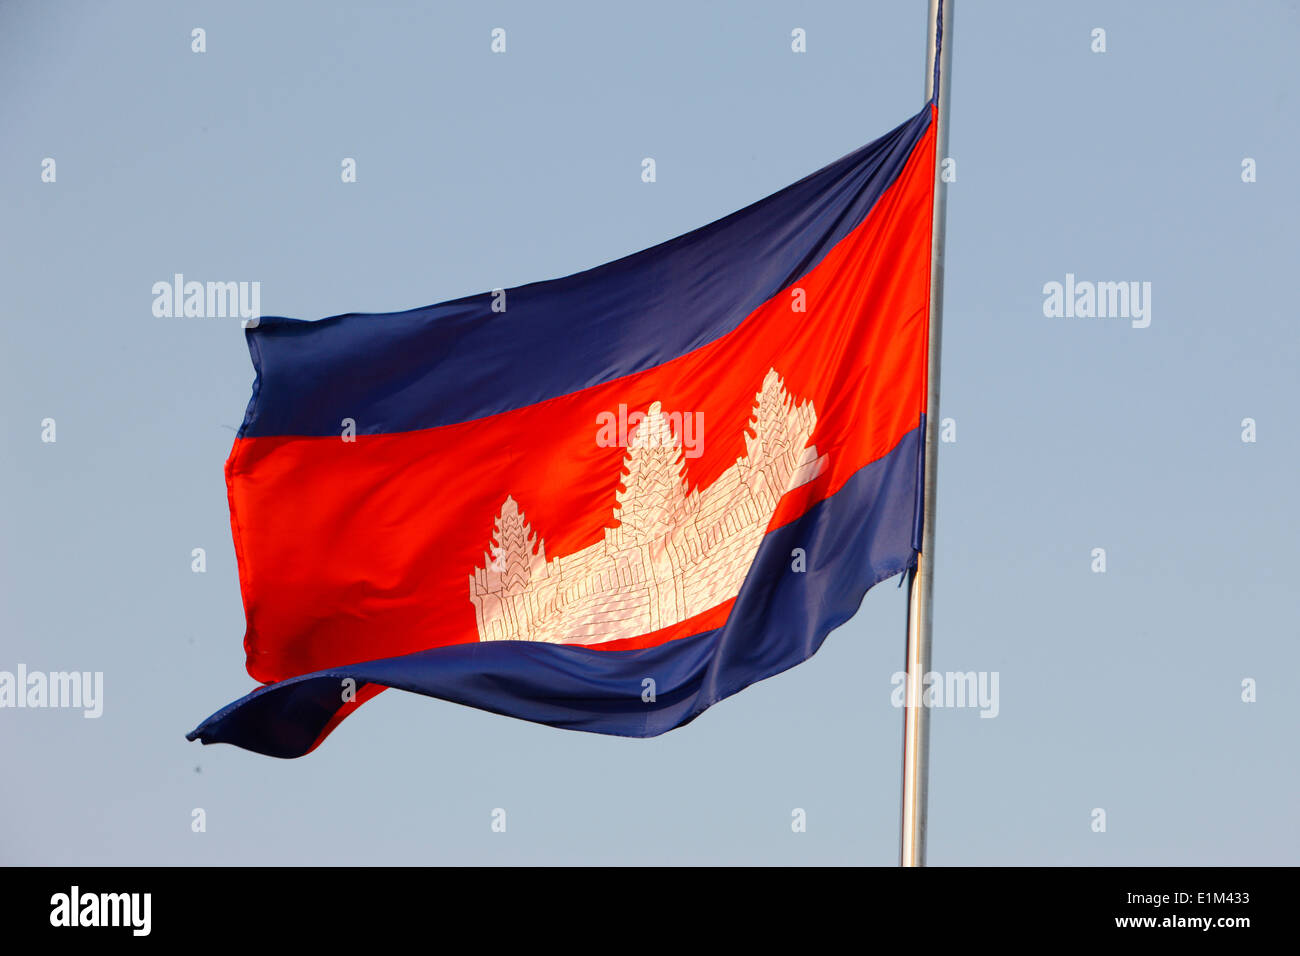 Cambodian flag with Angkor Vat. - Stock Image